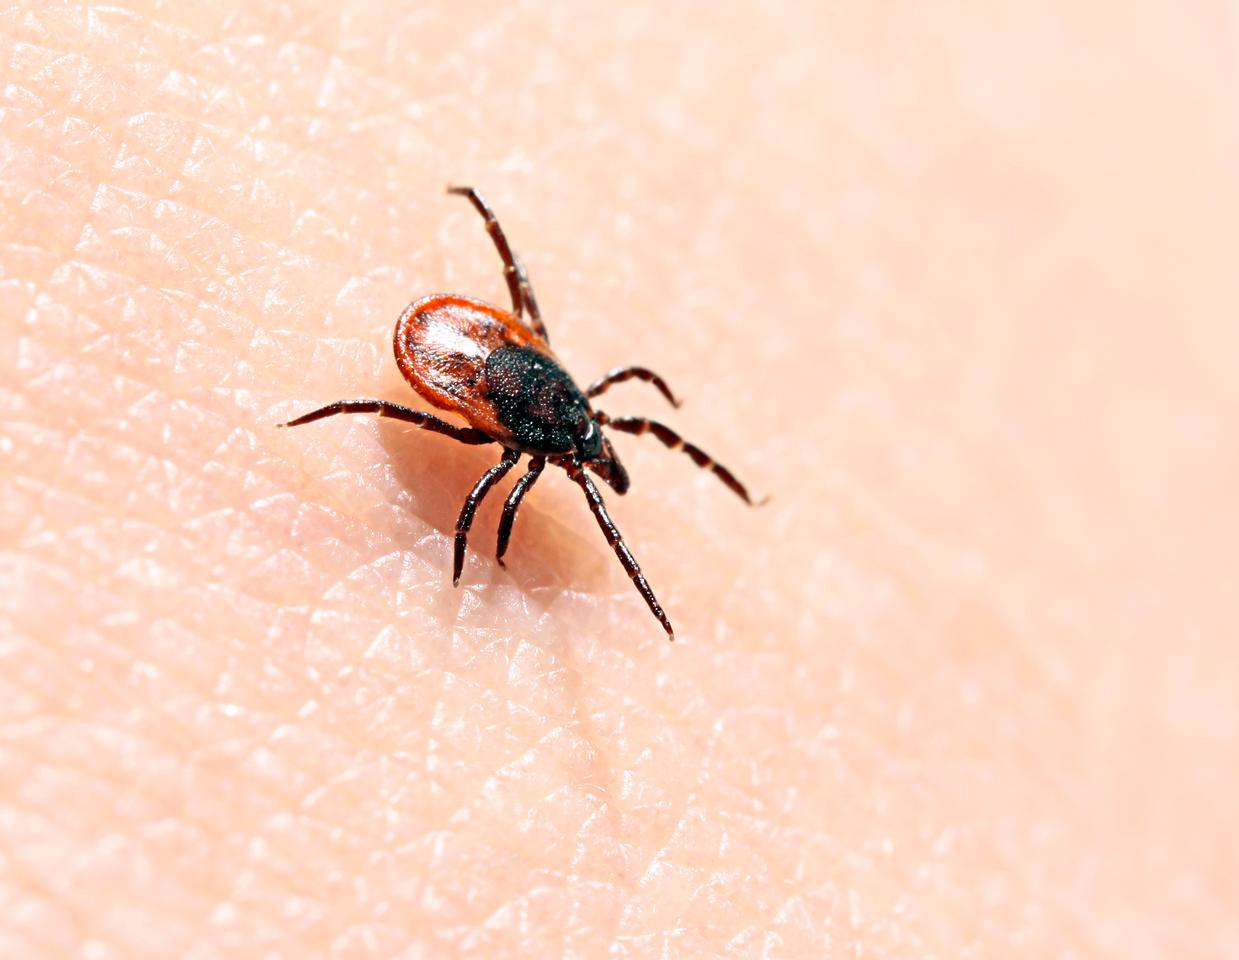 Scientists have uncovered a potential new treatment for Lyme disease, which is spread by ticks and affects as many as 300,000 people a year in the US